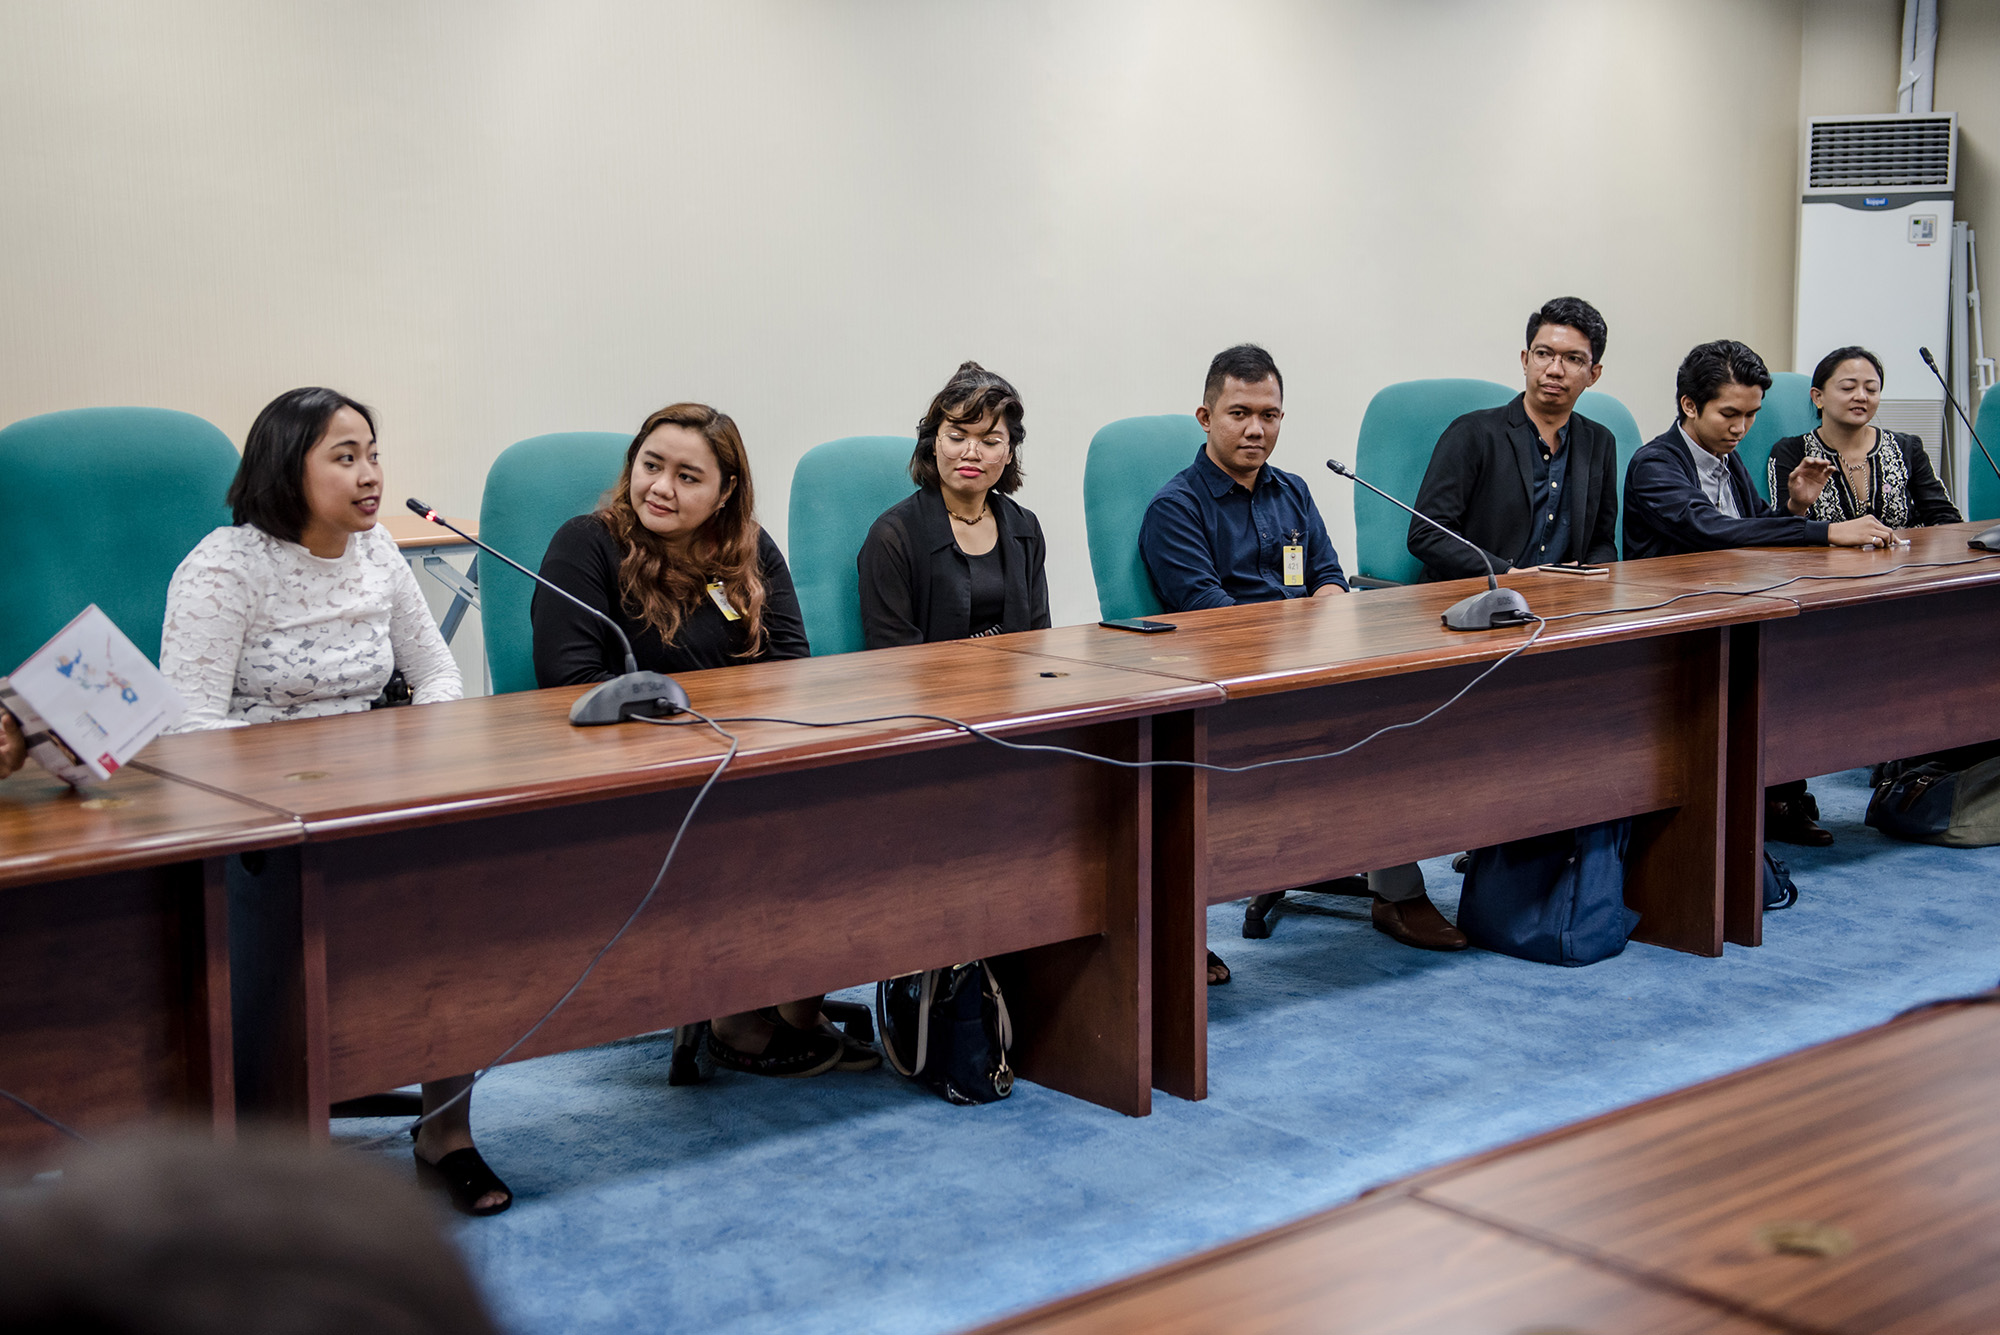 Teach for the Philippines Alumni working in education reform, specifically in program and policymaking in the Department of Education, the Commission on Higher Education, and the Senate Offices